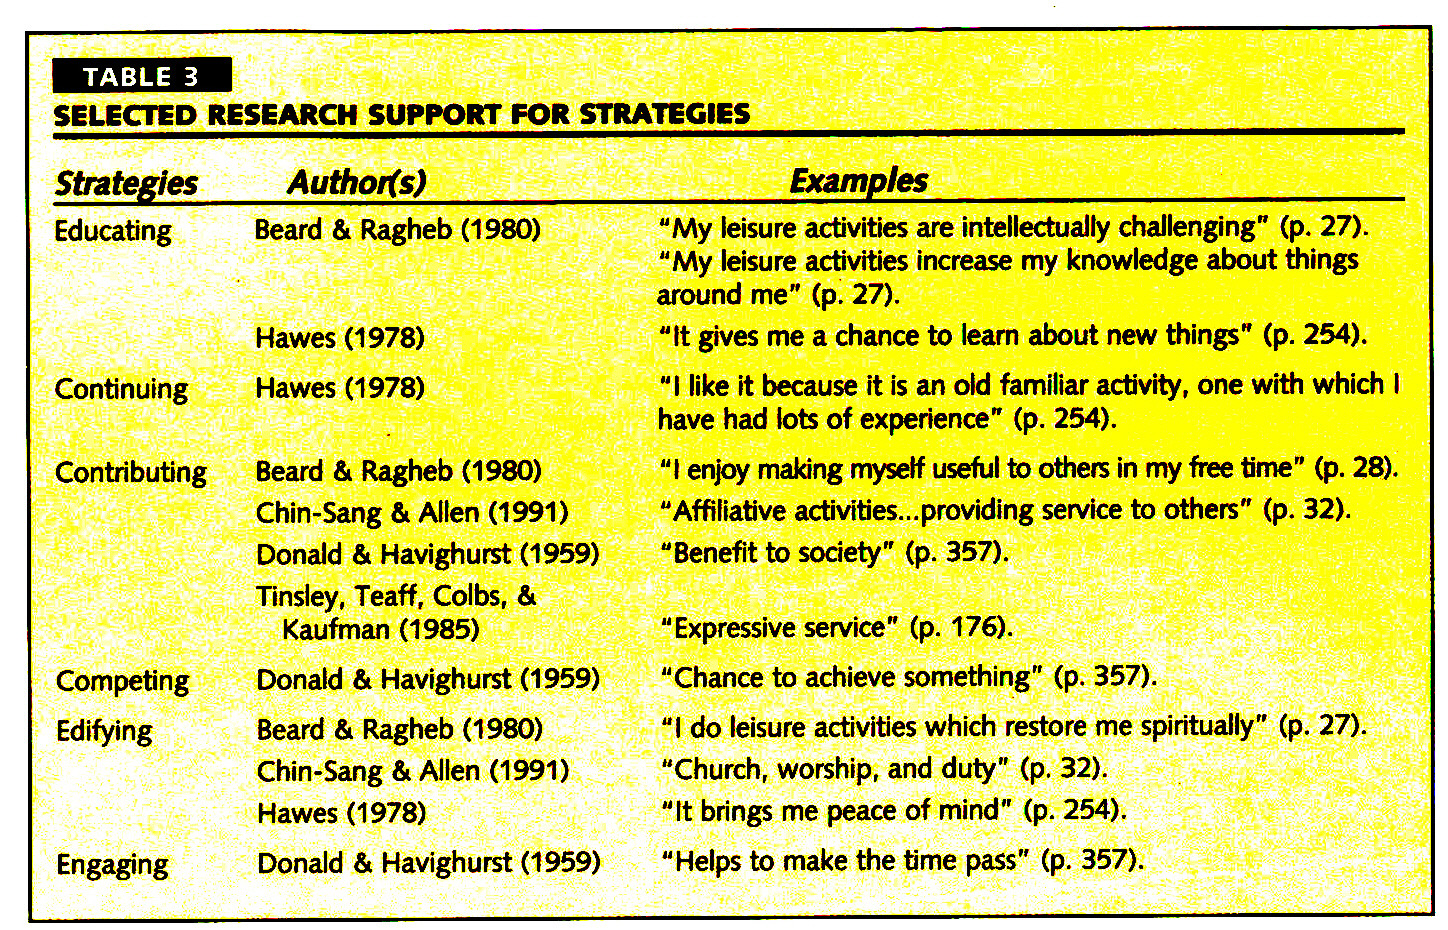 TABLE 3SELECTED RESEARCH SUPPORT FOR STRATEGIES